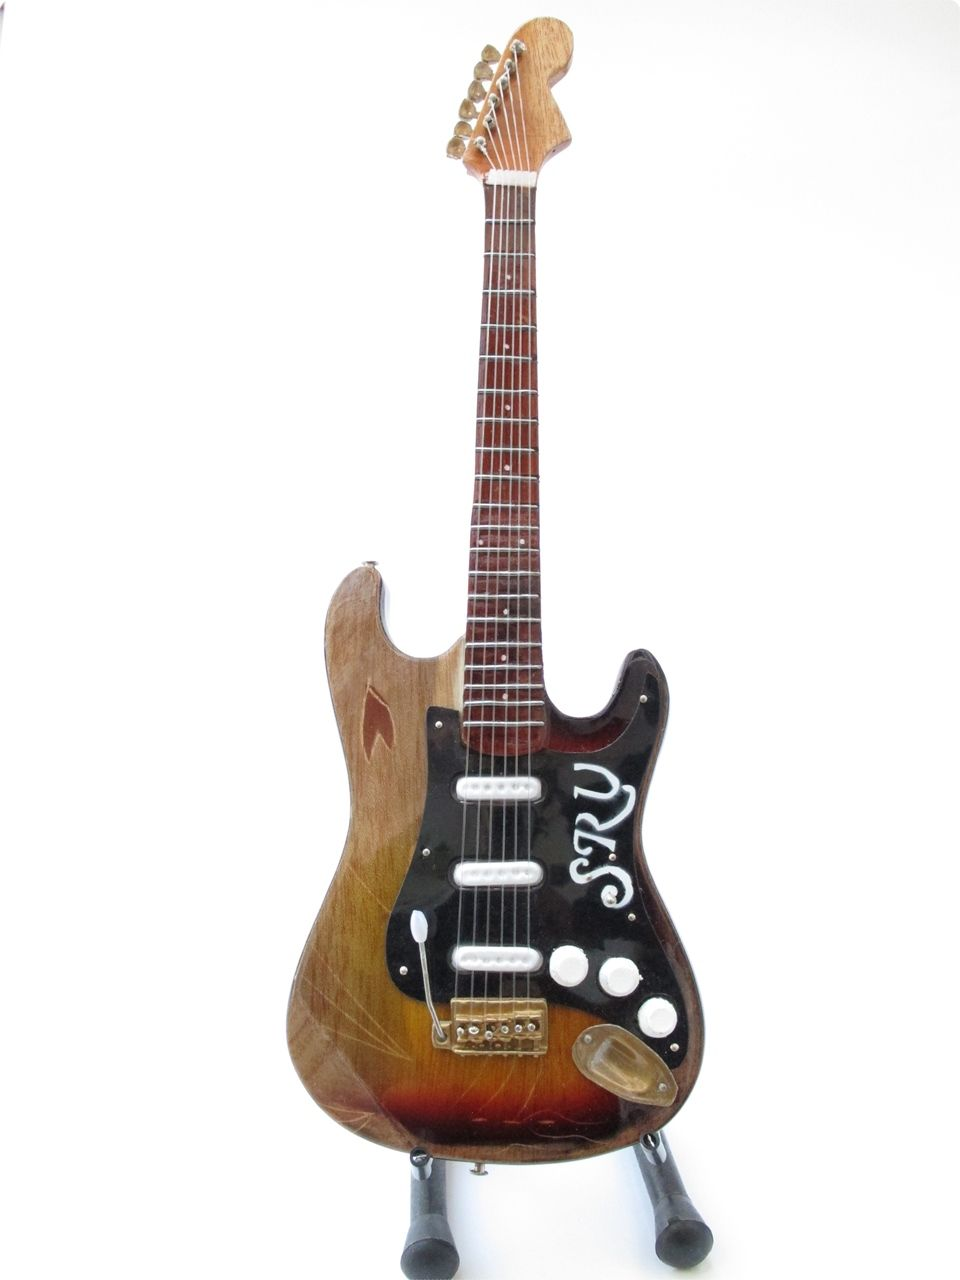 Stevie Ray Vaughan scratched